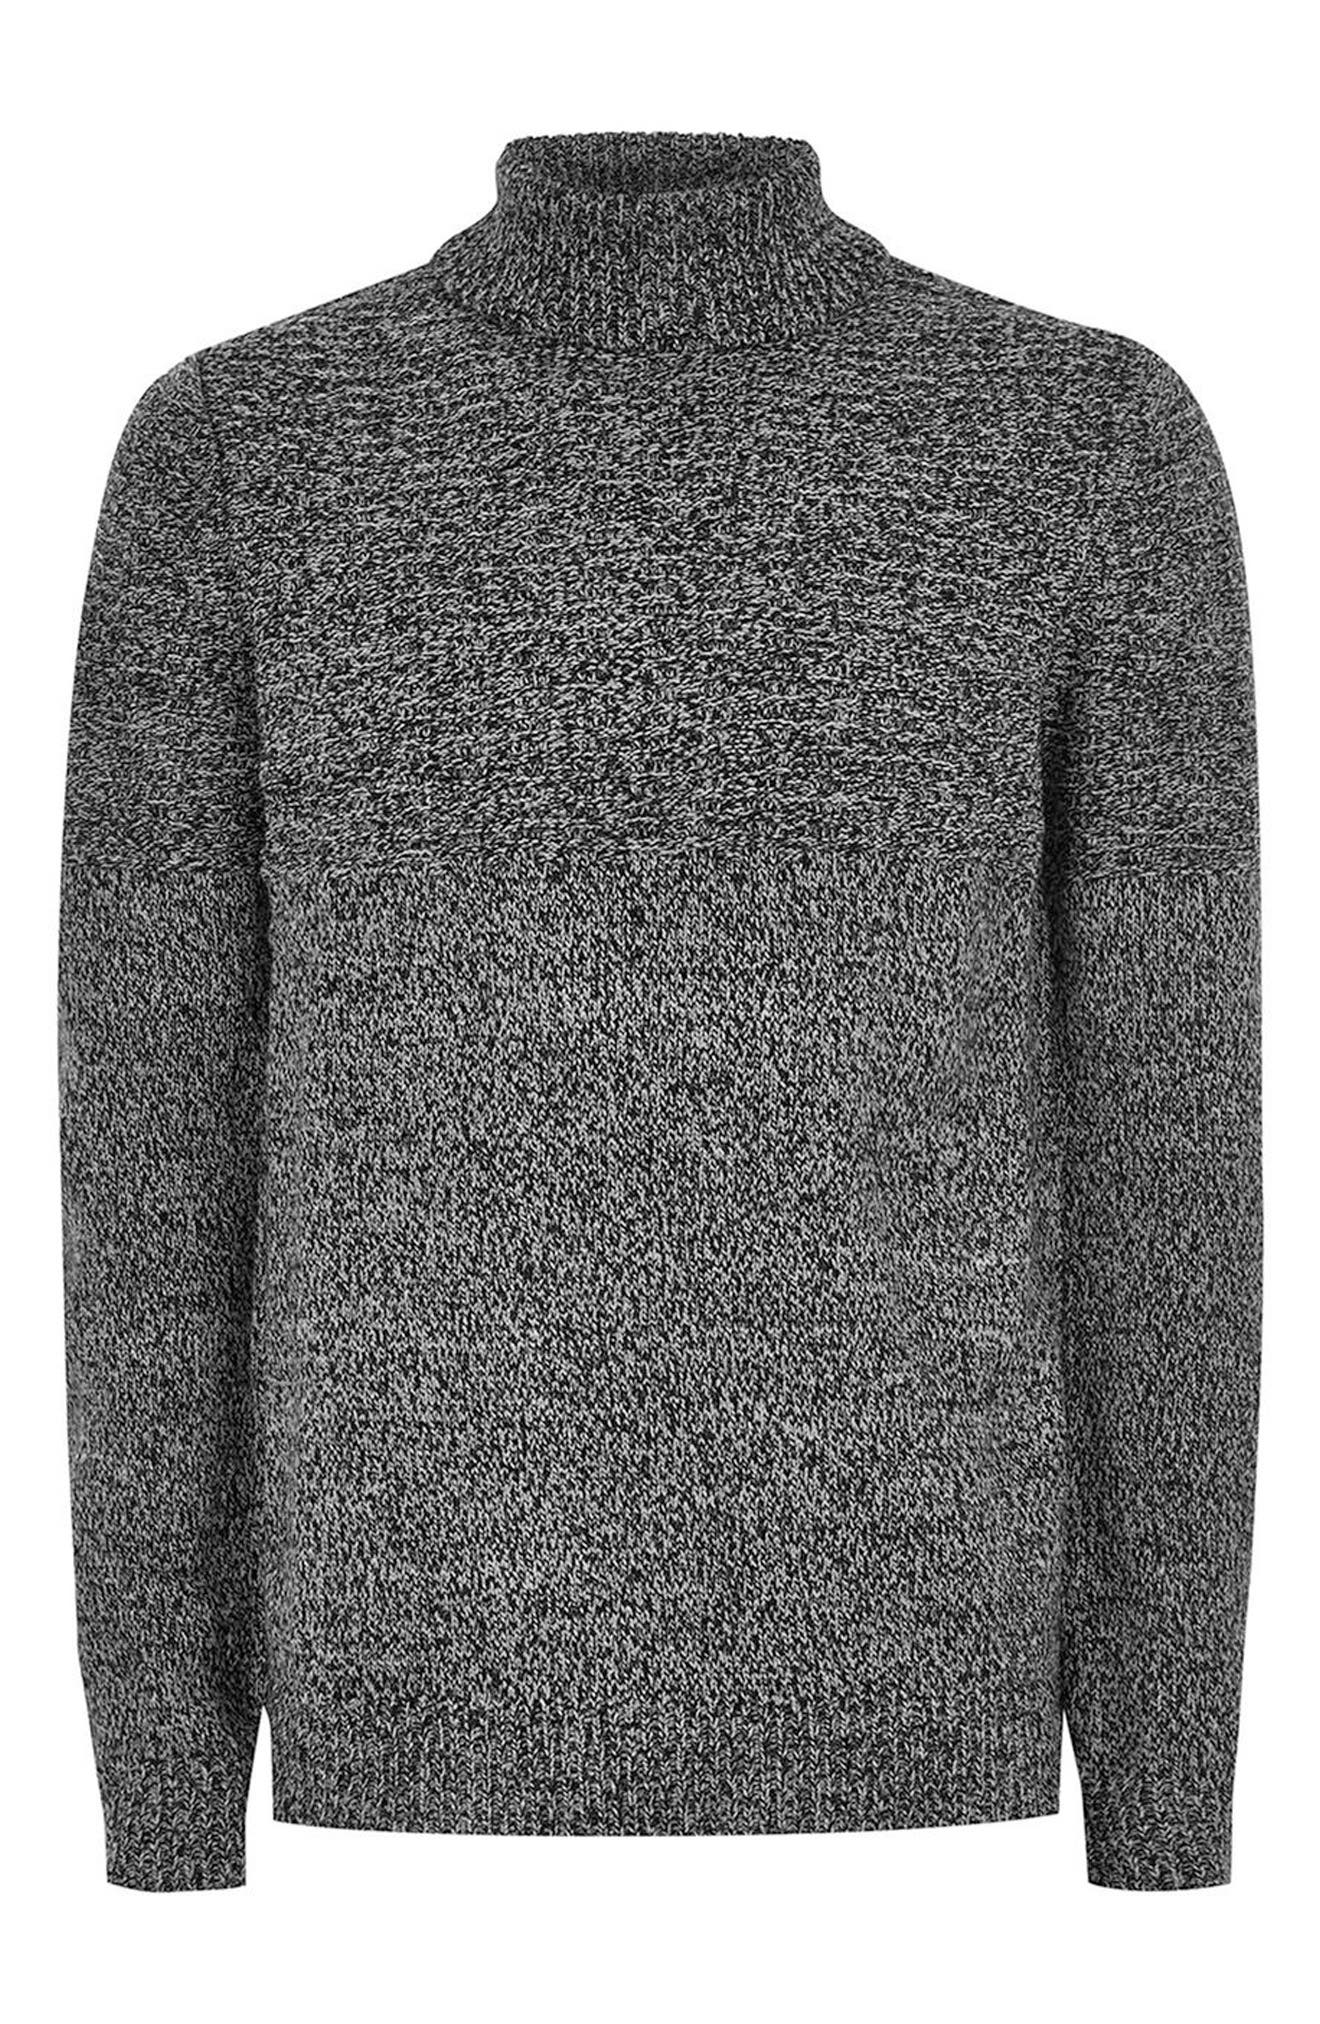 Alternate Image 3  - Topman Twist Roll Neck Sweater